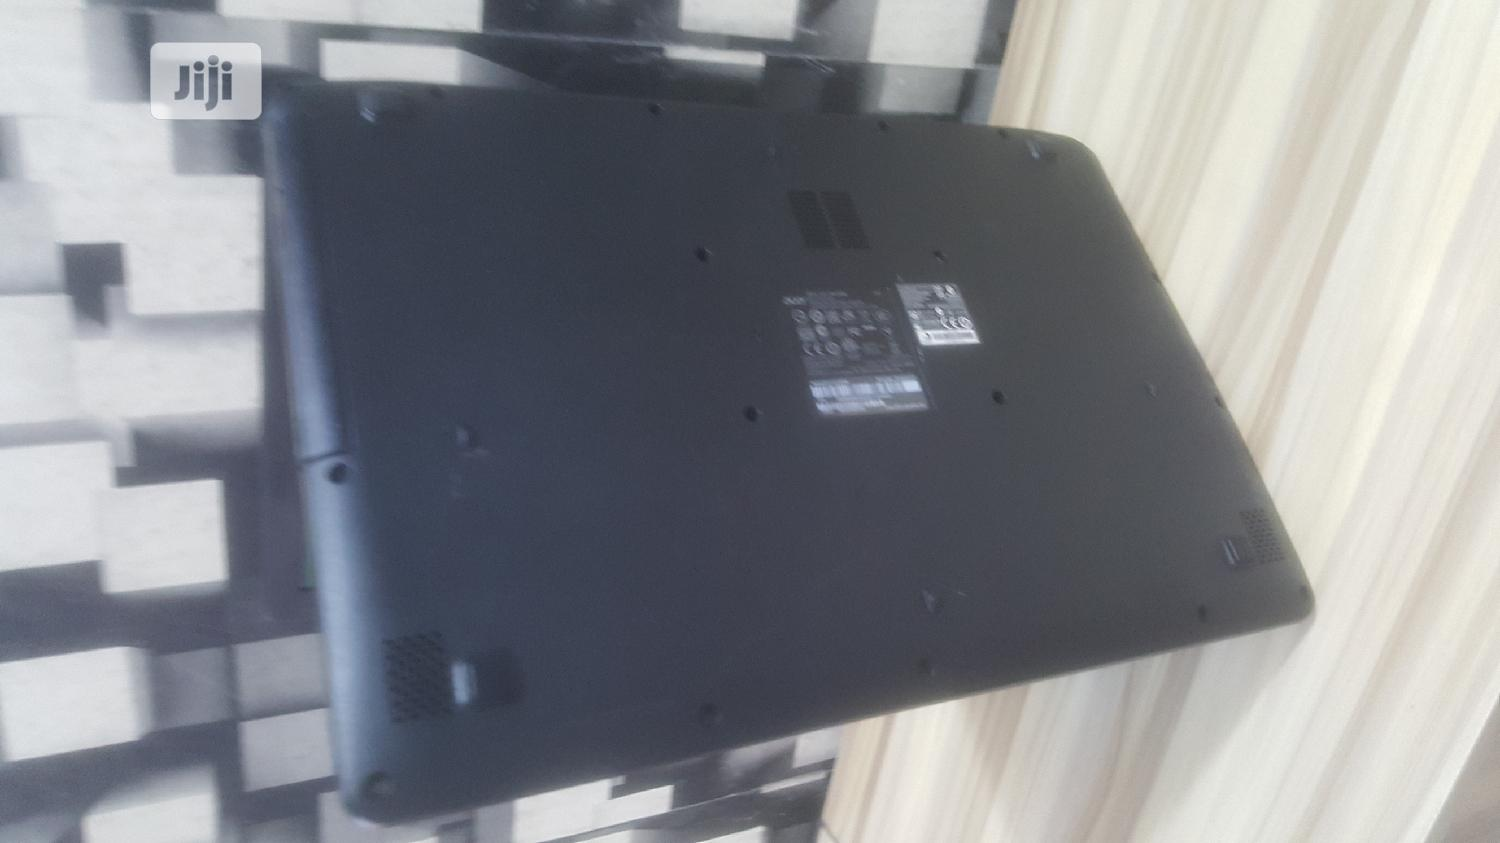 Laptop Acer Aspire E1-521 4GB Intel Pentium HDD 500GB | Laptops & Computers for sale in Ikeja, Lagos State, Nigeria